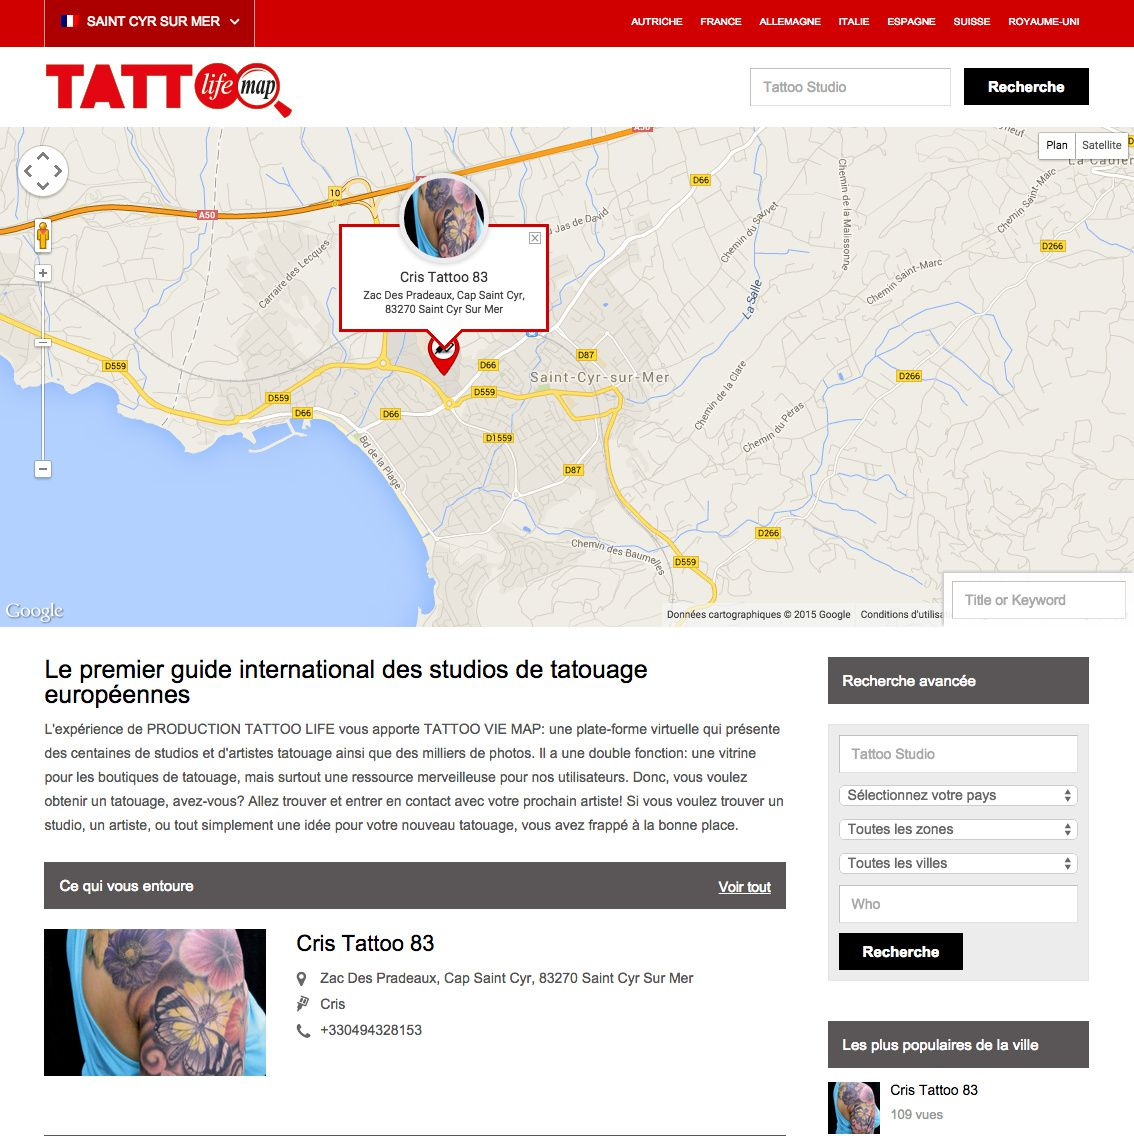 Cris Tattoo 83 Tattoo life Map